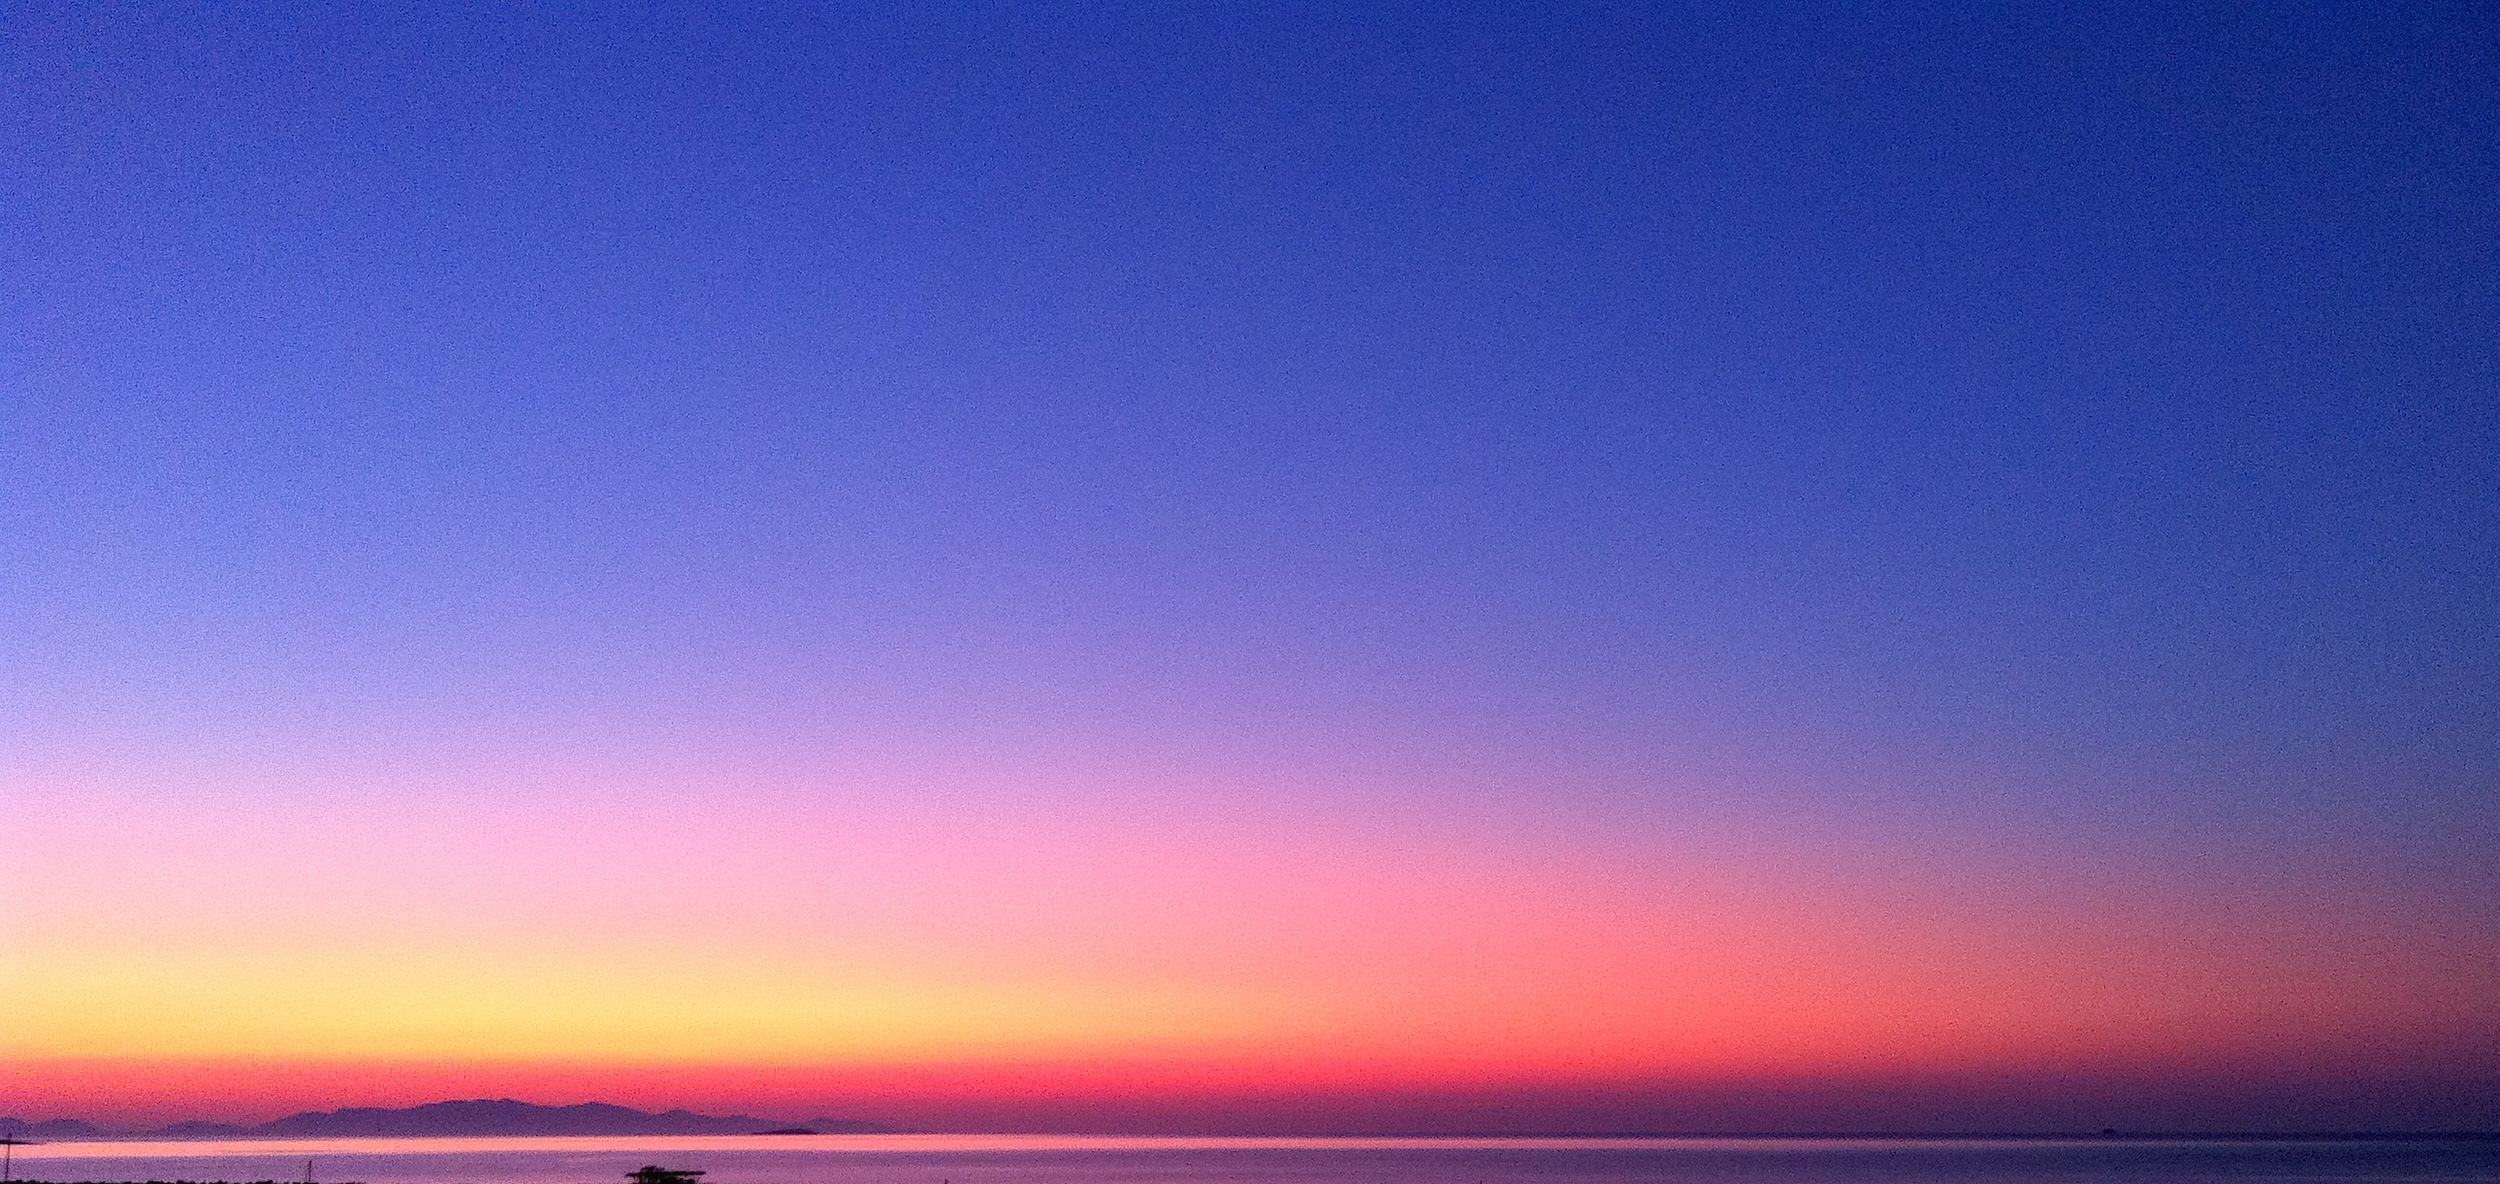 Sunrise at one of the most beautiful locations in Alonissos